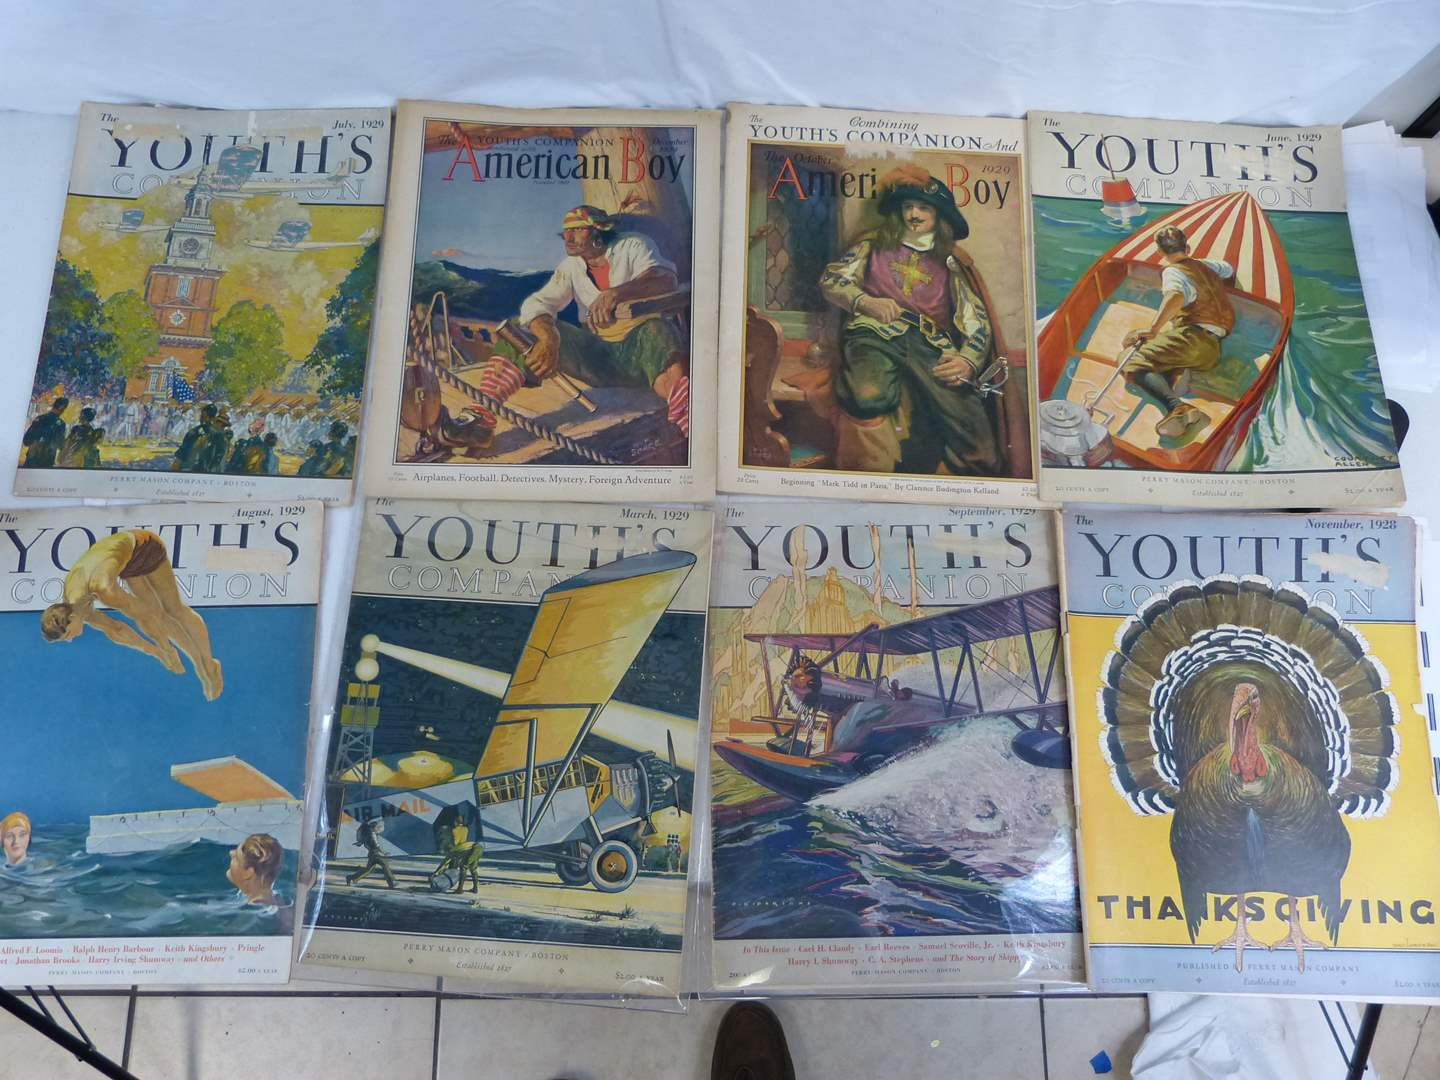 Lot # 248 Vintage collection of Youth magazines (main image)